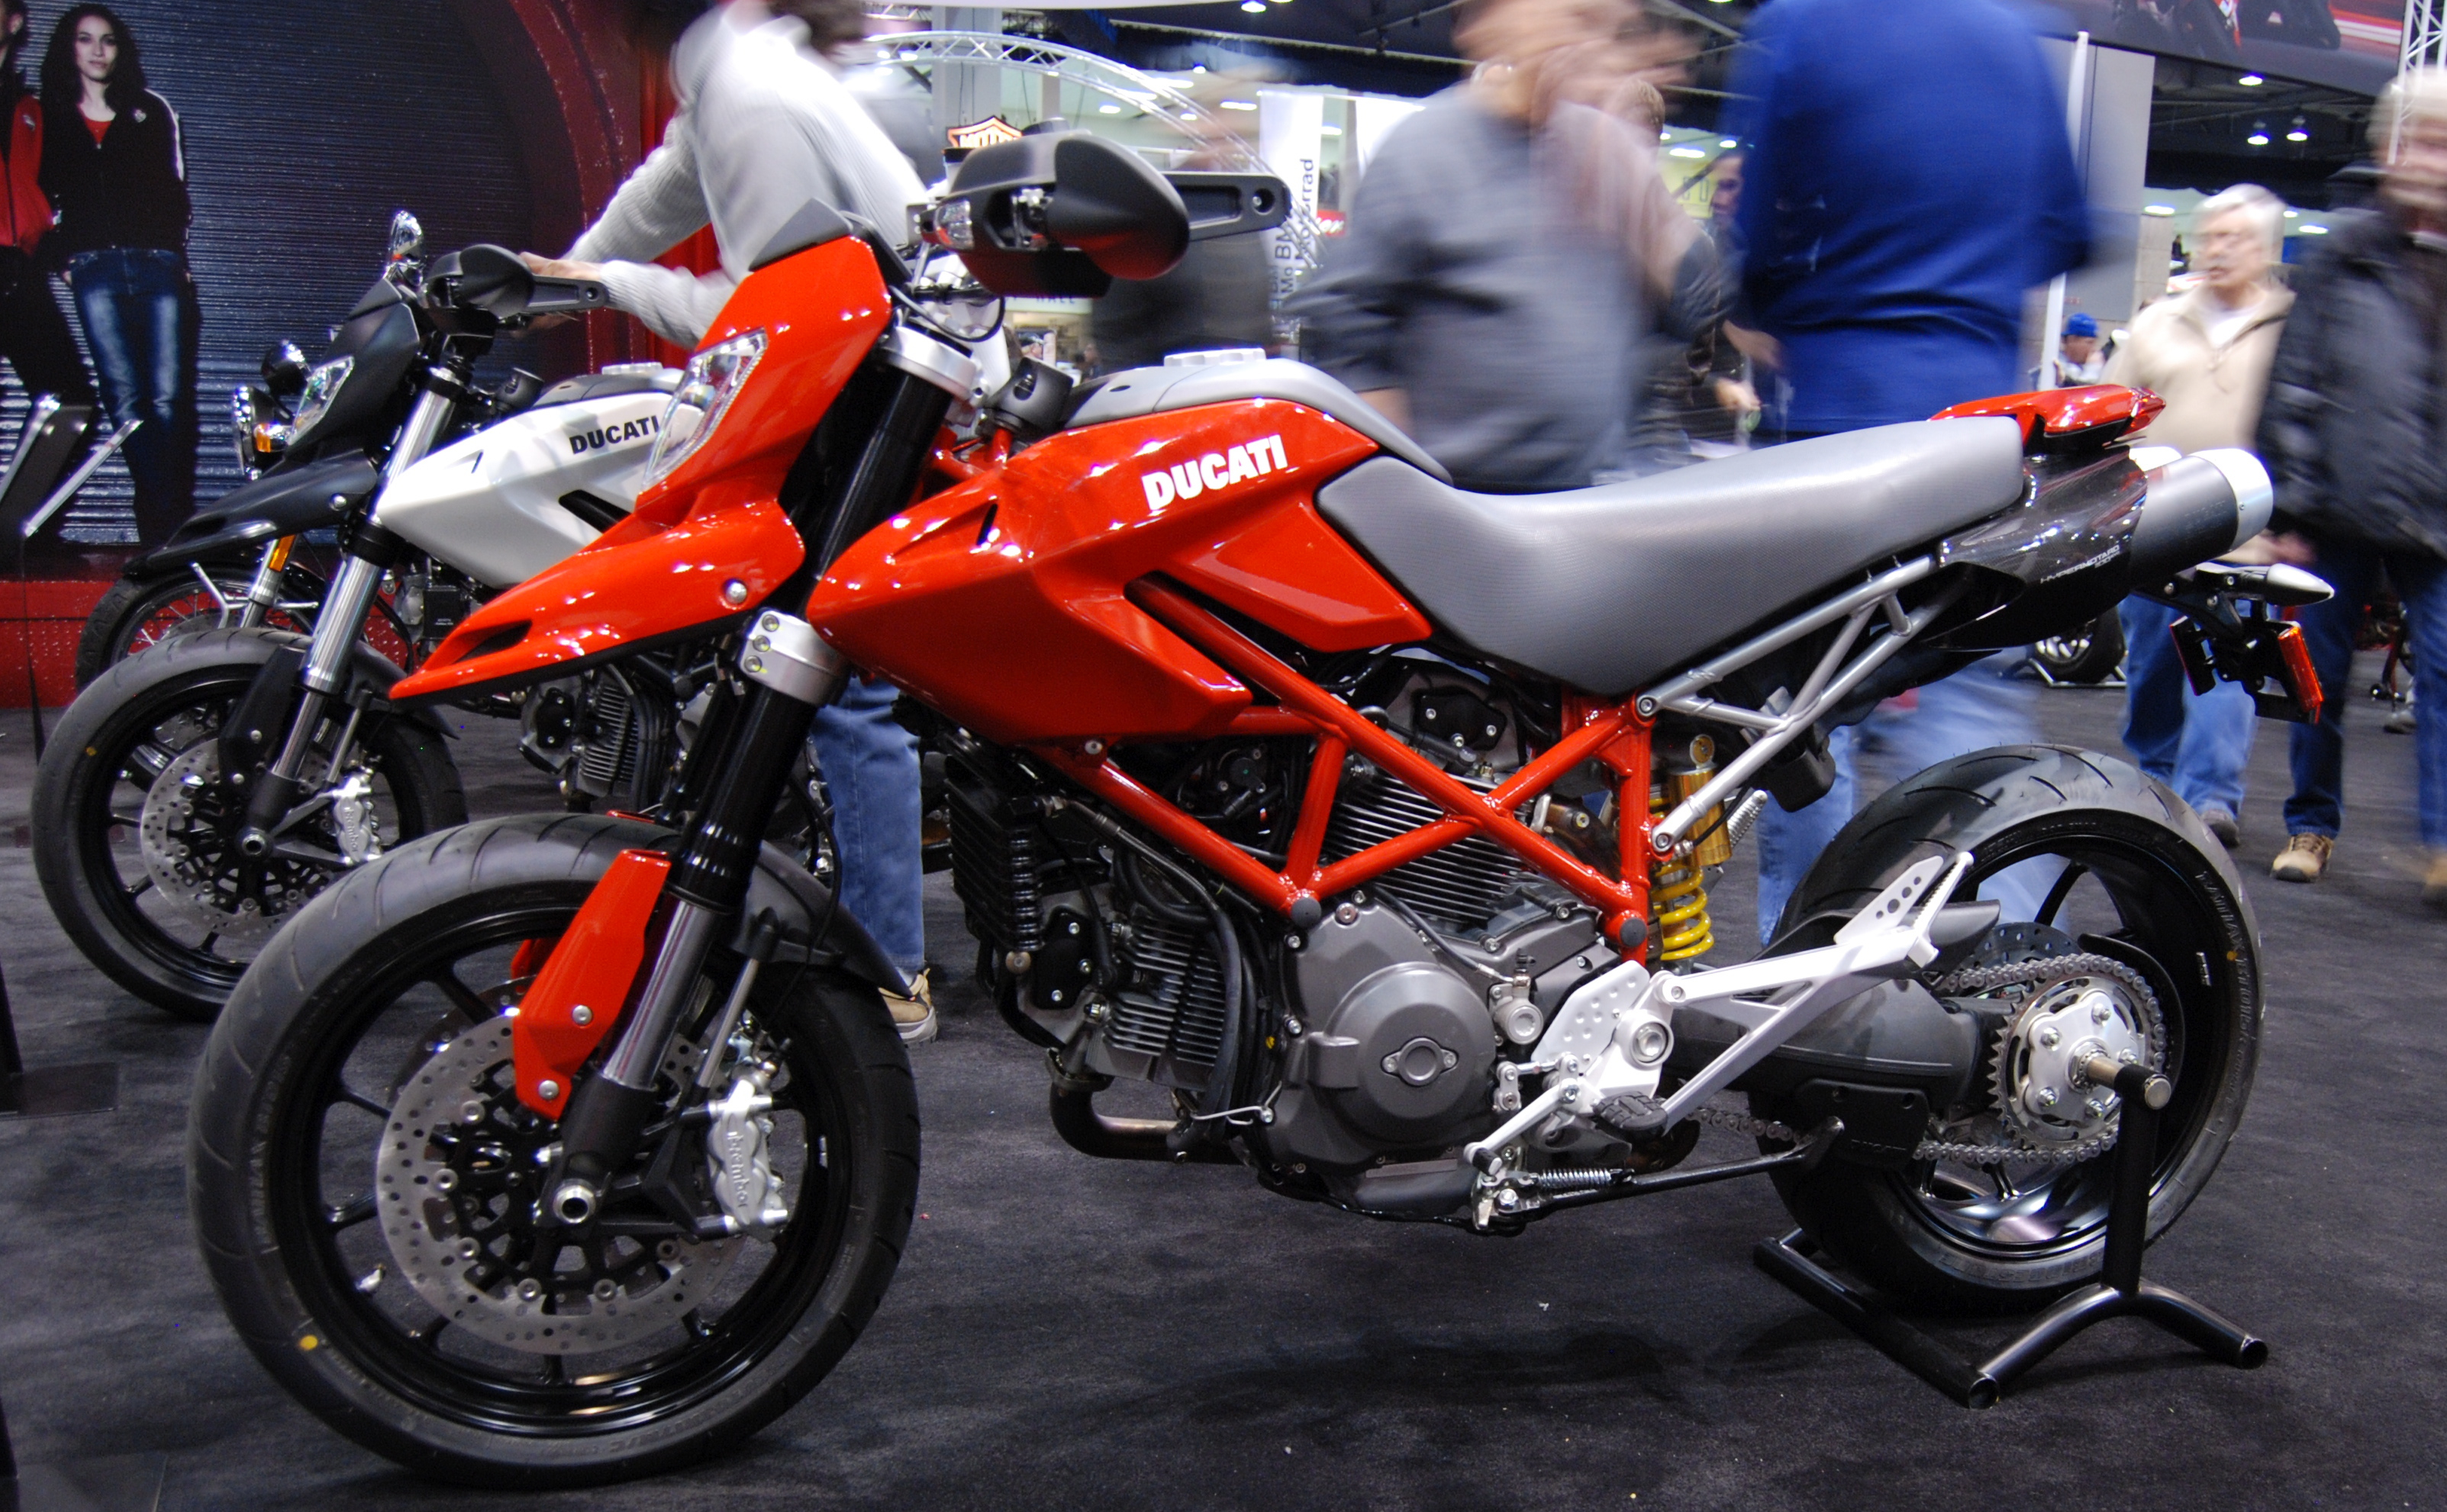 file:2010 ducati hypermotard 796 at the 2009 seattle international